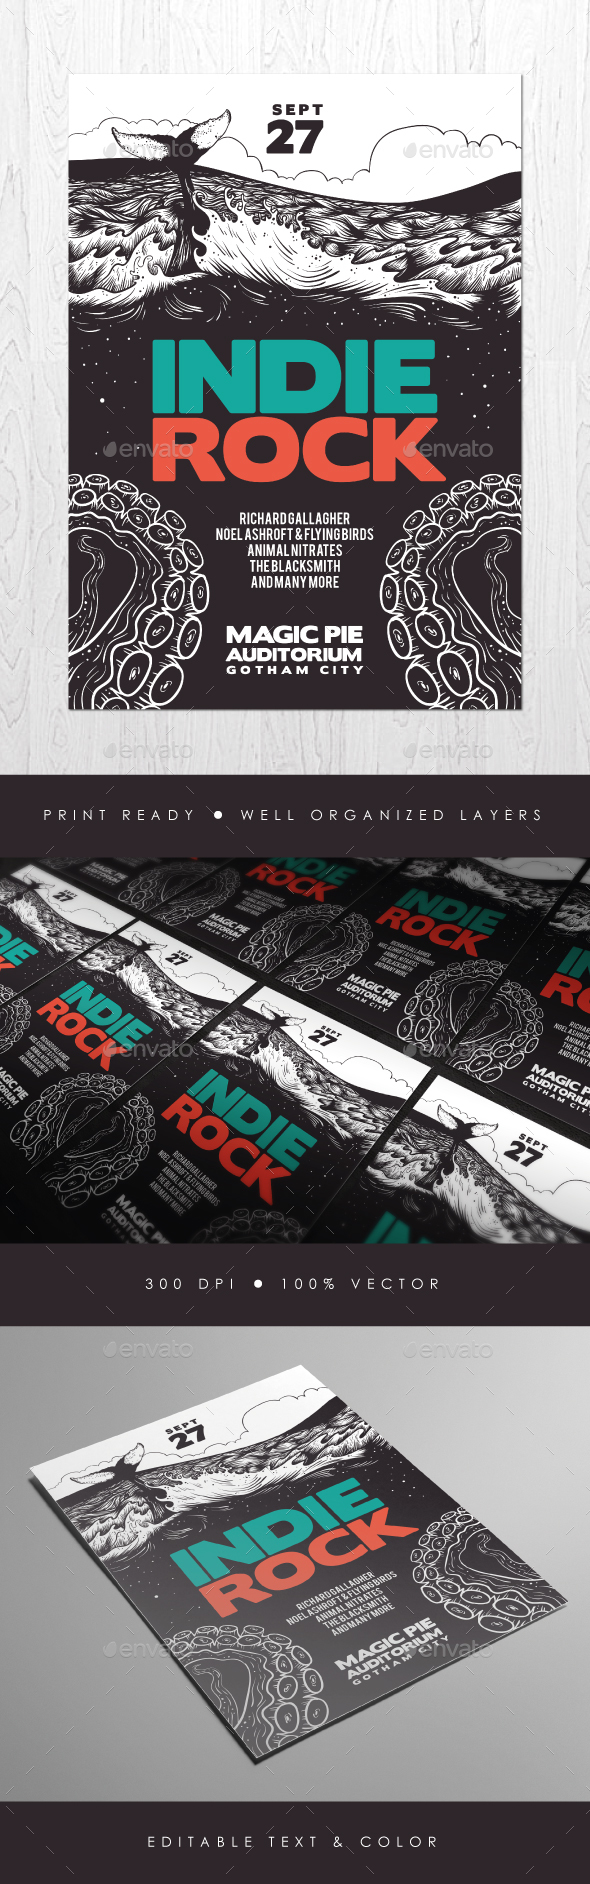 Illustrated Indie Rock Flyer - Concerts Events